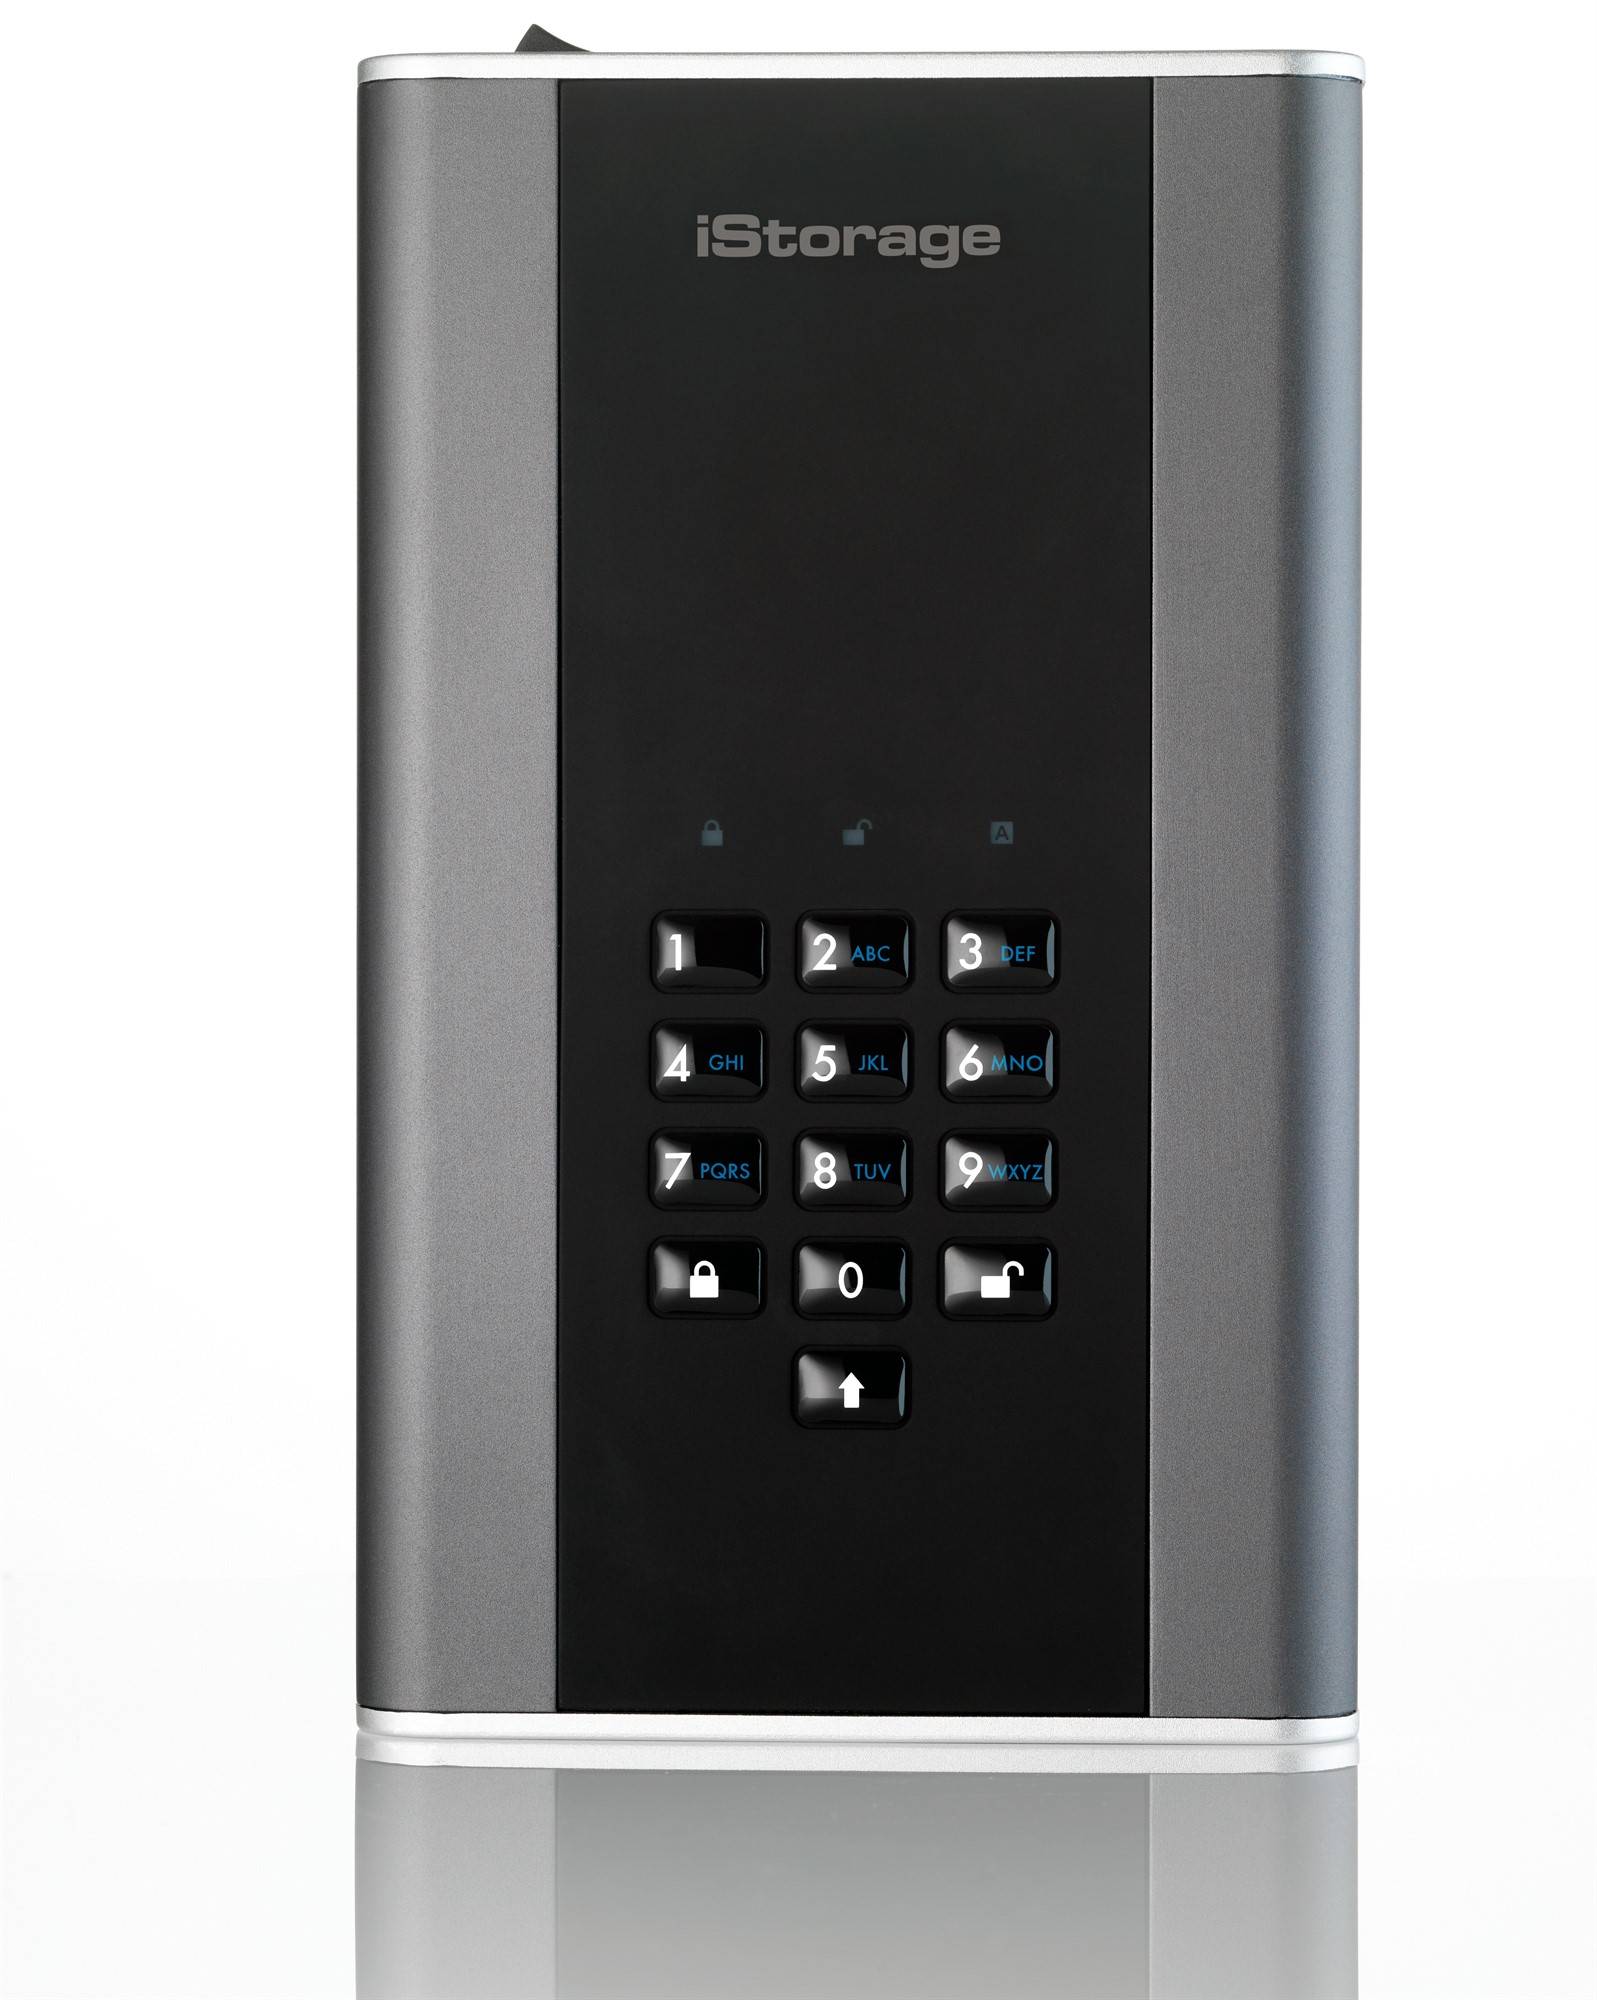 ISTORAGE IS-DT2-256-6000-C-G DISKASHUR DT 2 6000GB BLACK, GRAPHITE EXTERNAL HARD DRIVE